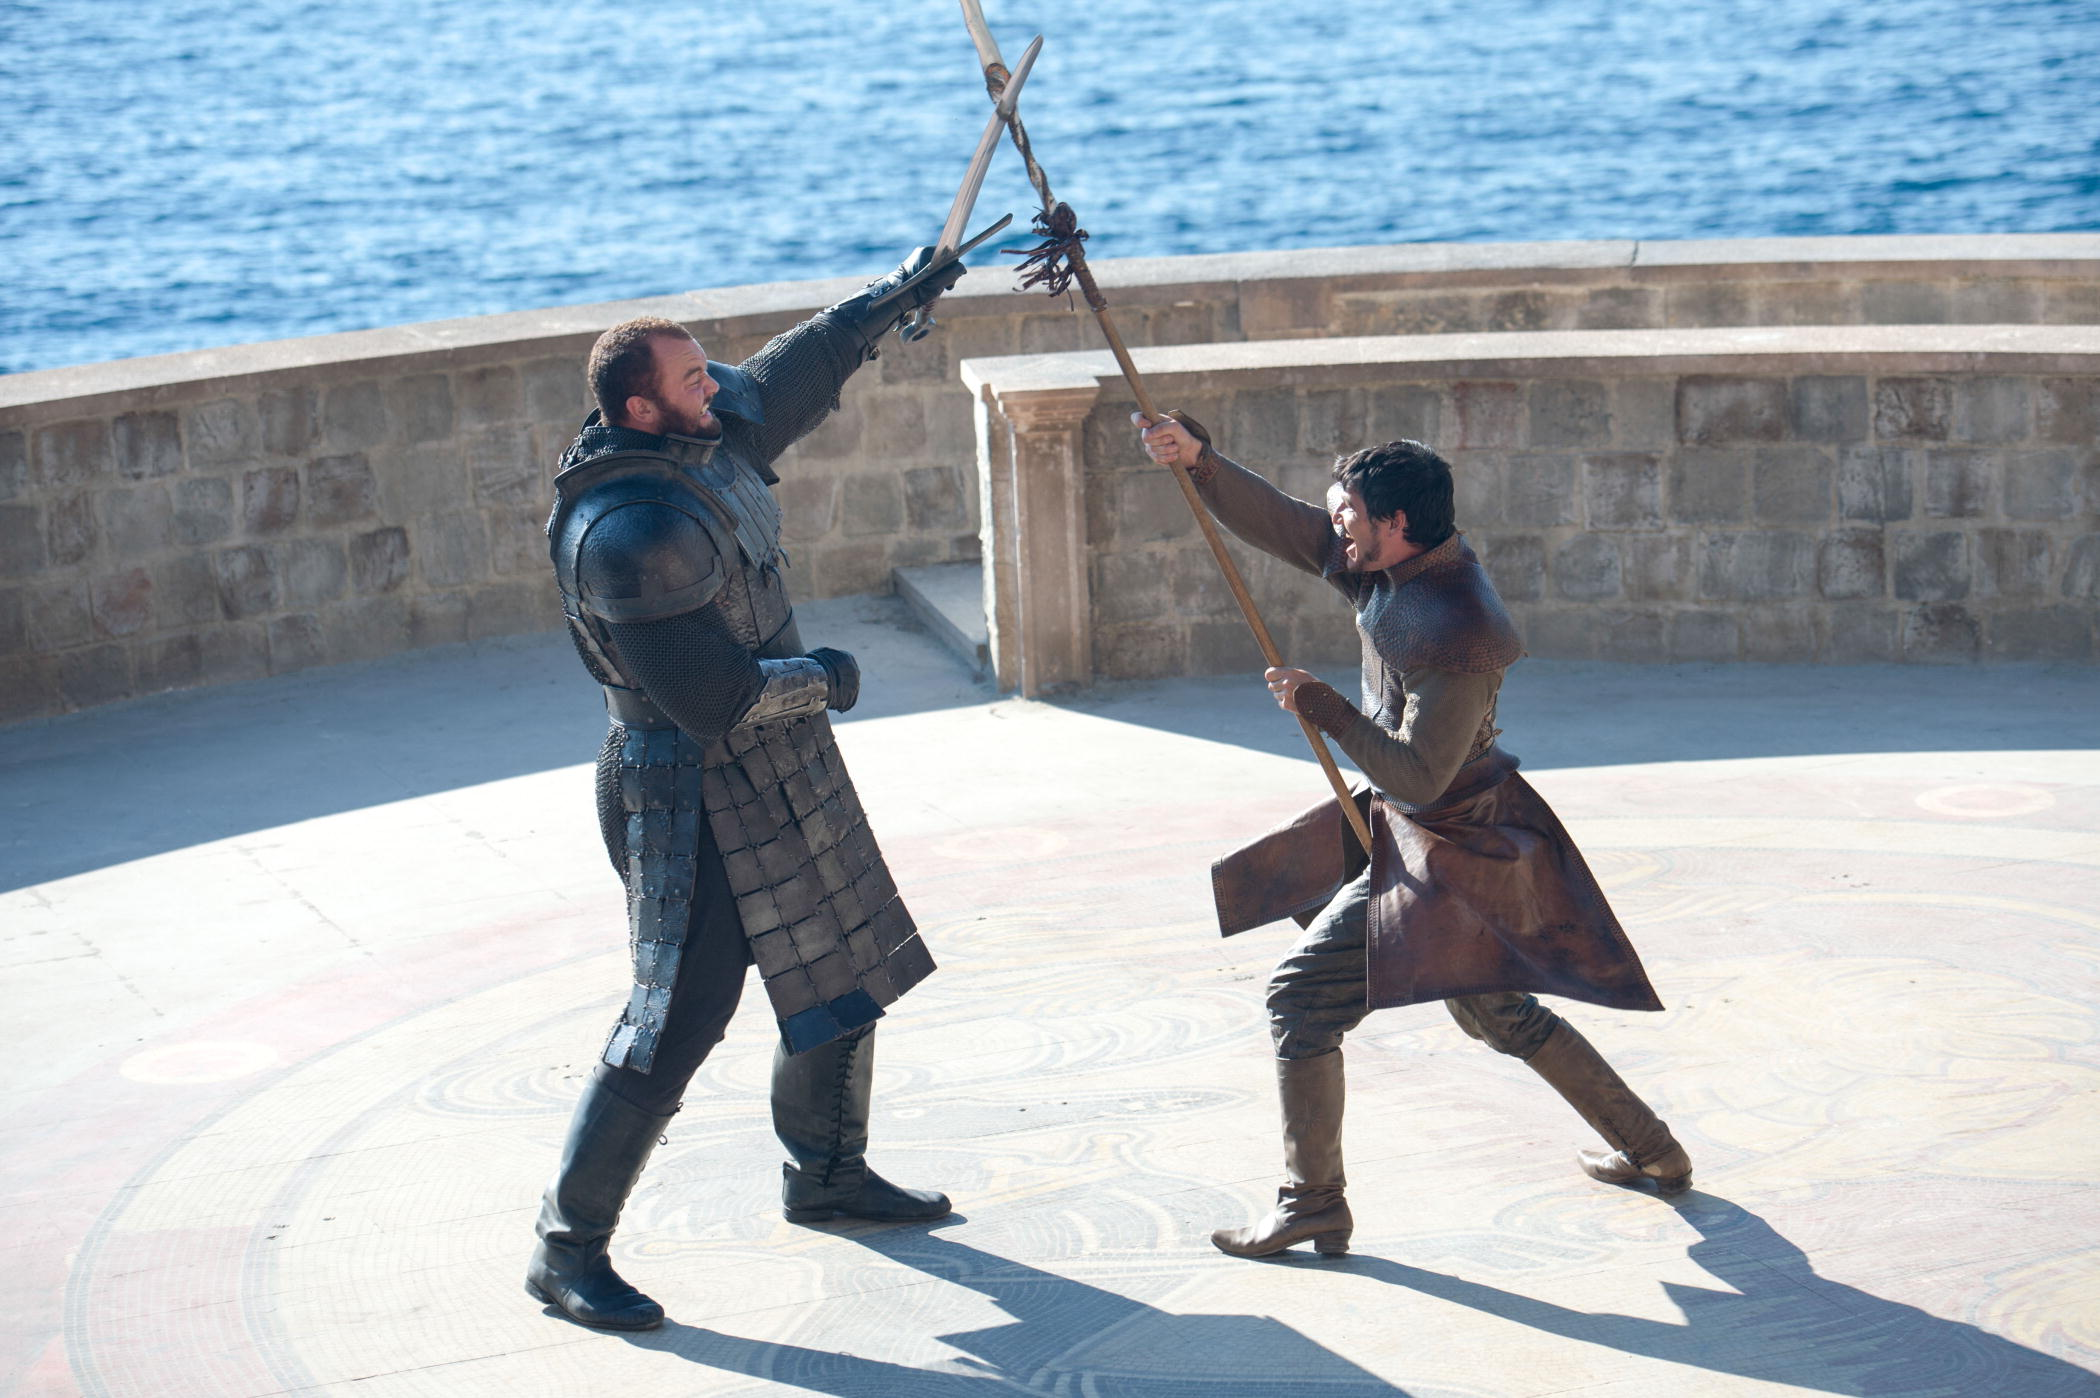 Hafþór Júlíus Björnsson and Pedro Pascal fight as The Mountain and Oberyn in Season 4 Episode 8 of Game of Thrones.